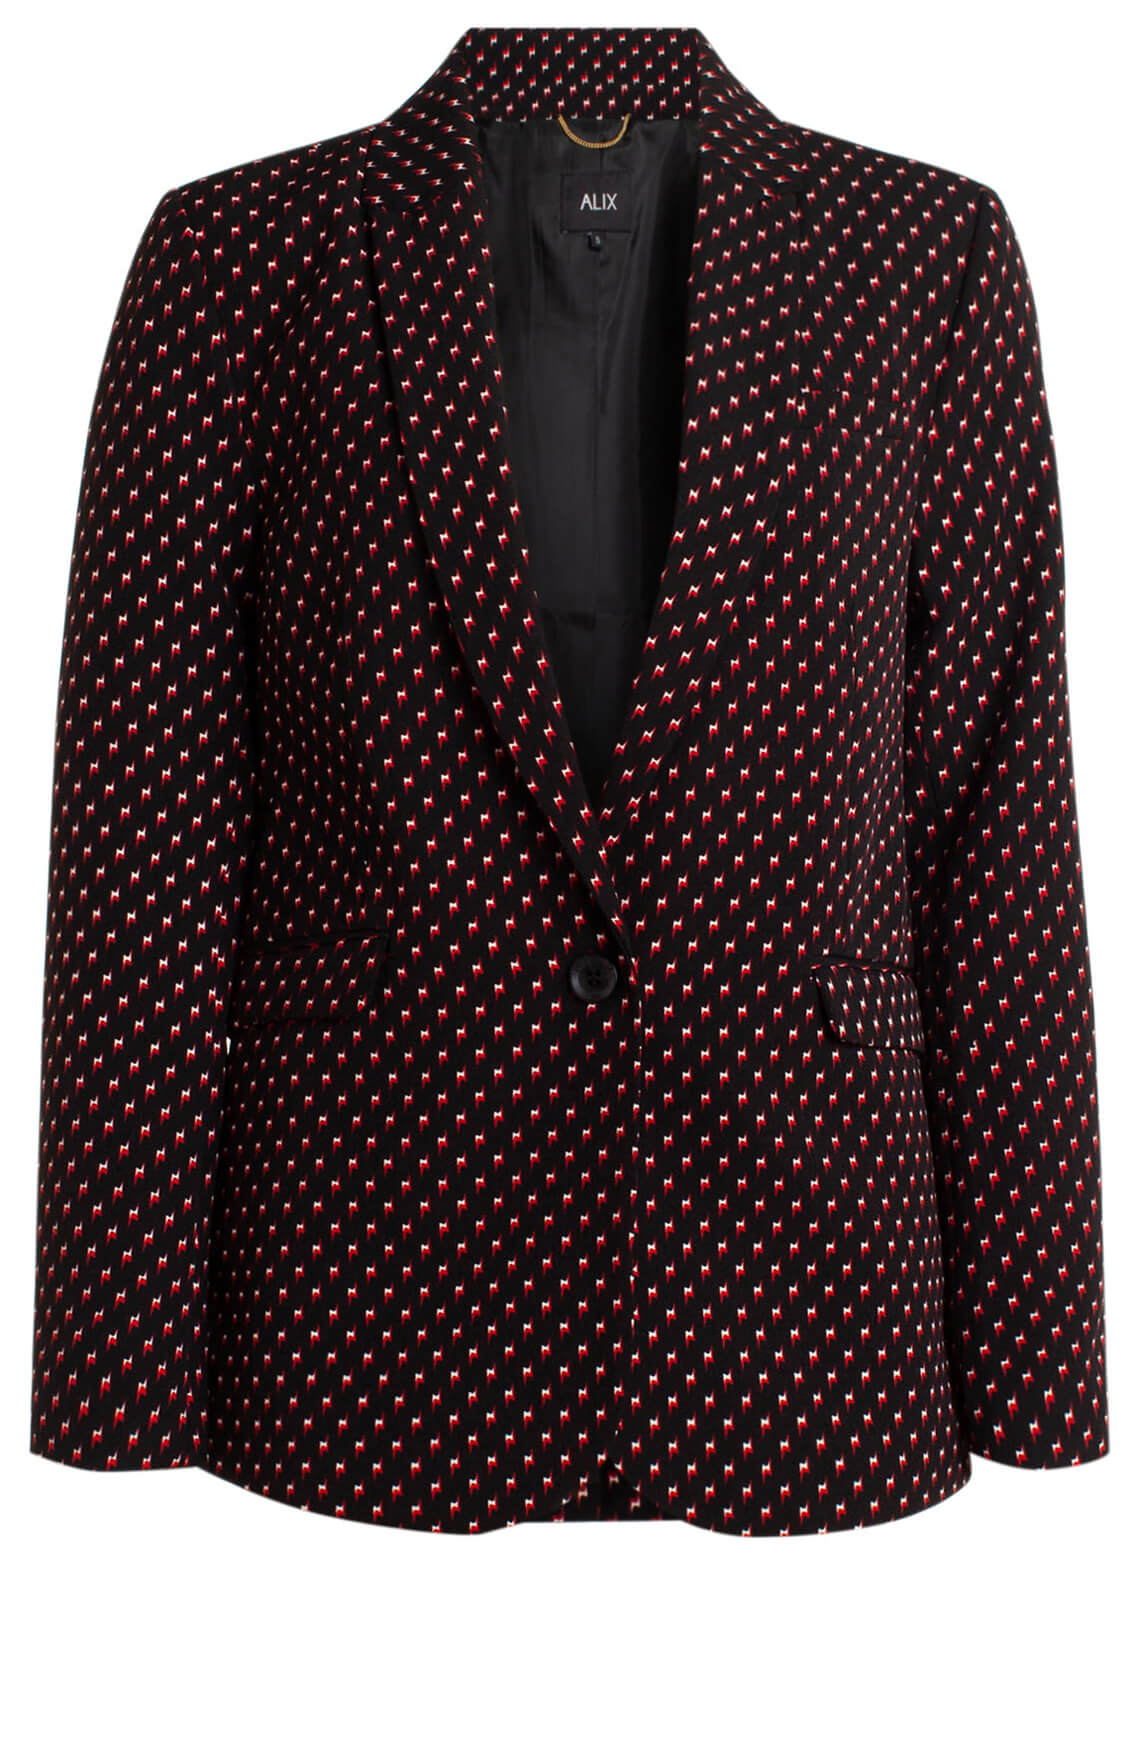 Alix The Label Dames Blazer met bliksemprint zwart